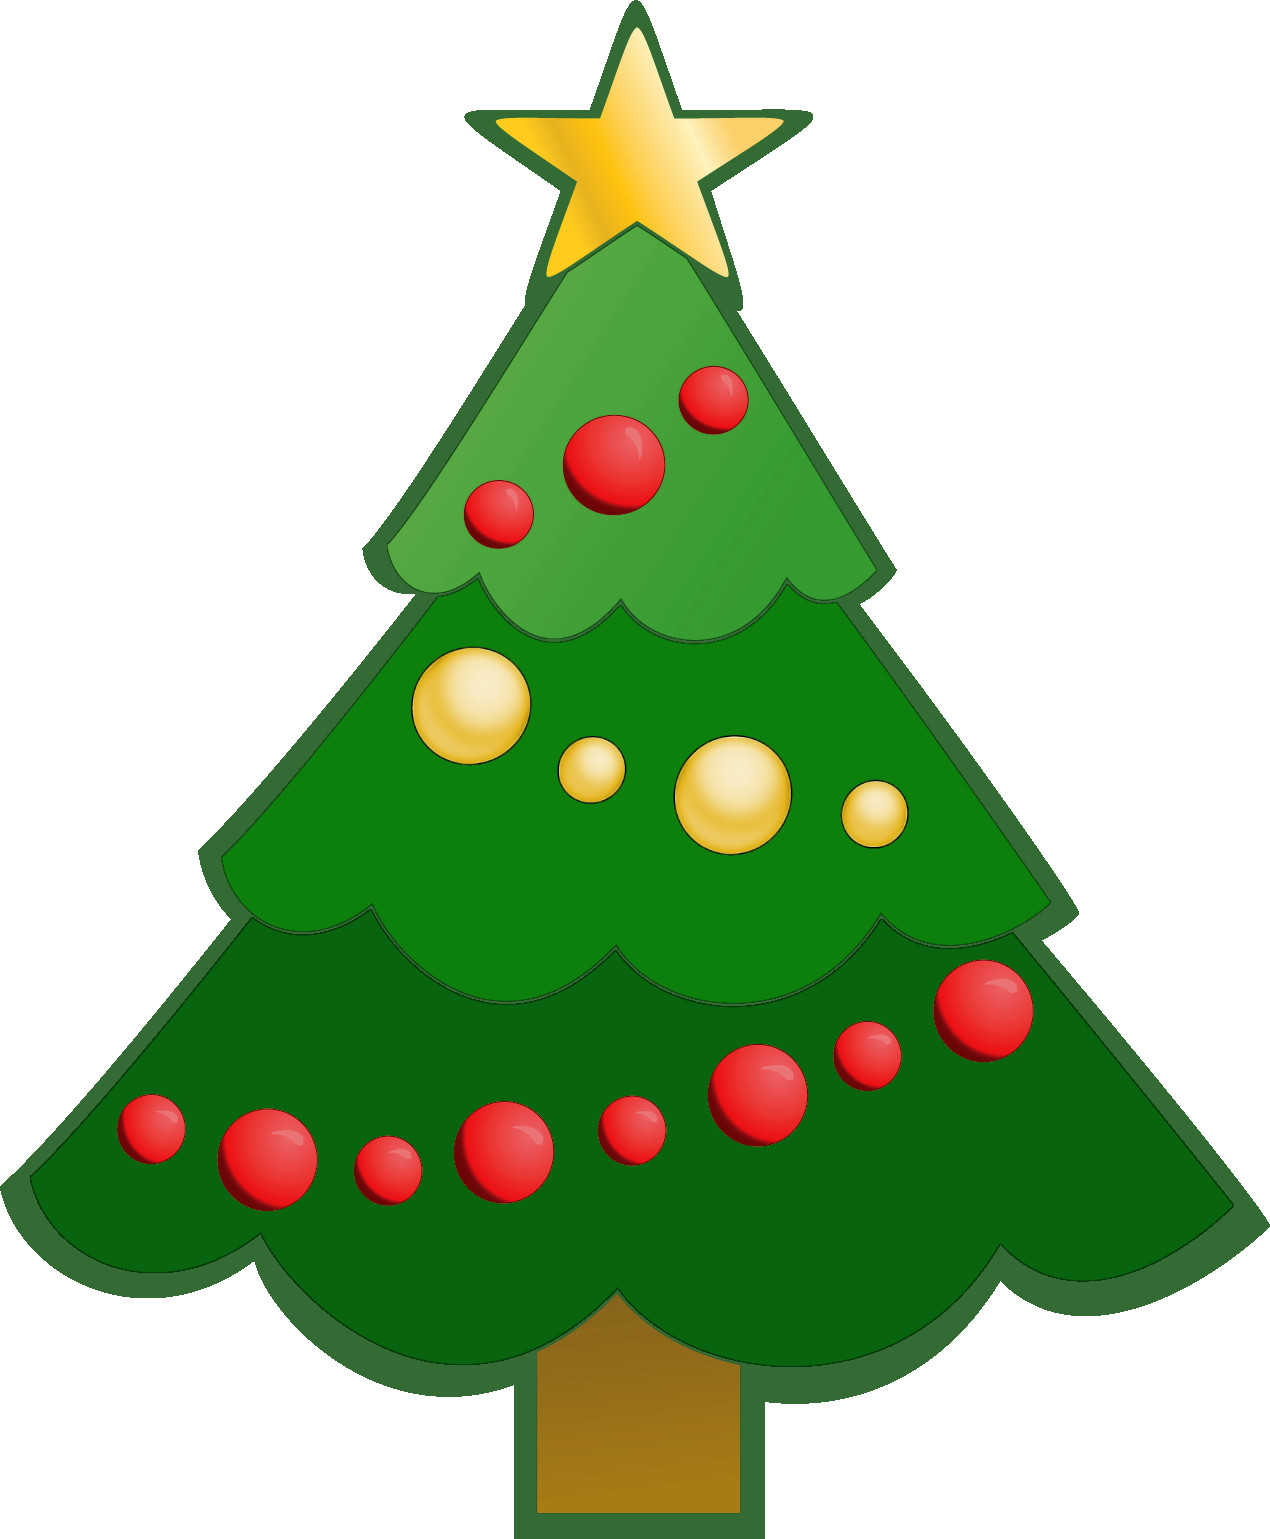 1270x1539 Transparent Deco Christmas Tree With Gifts Clipart Gallery Simple